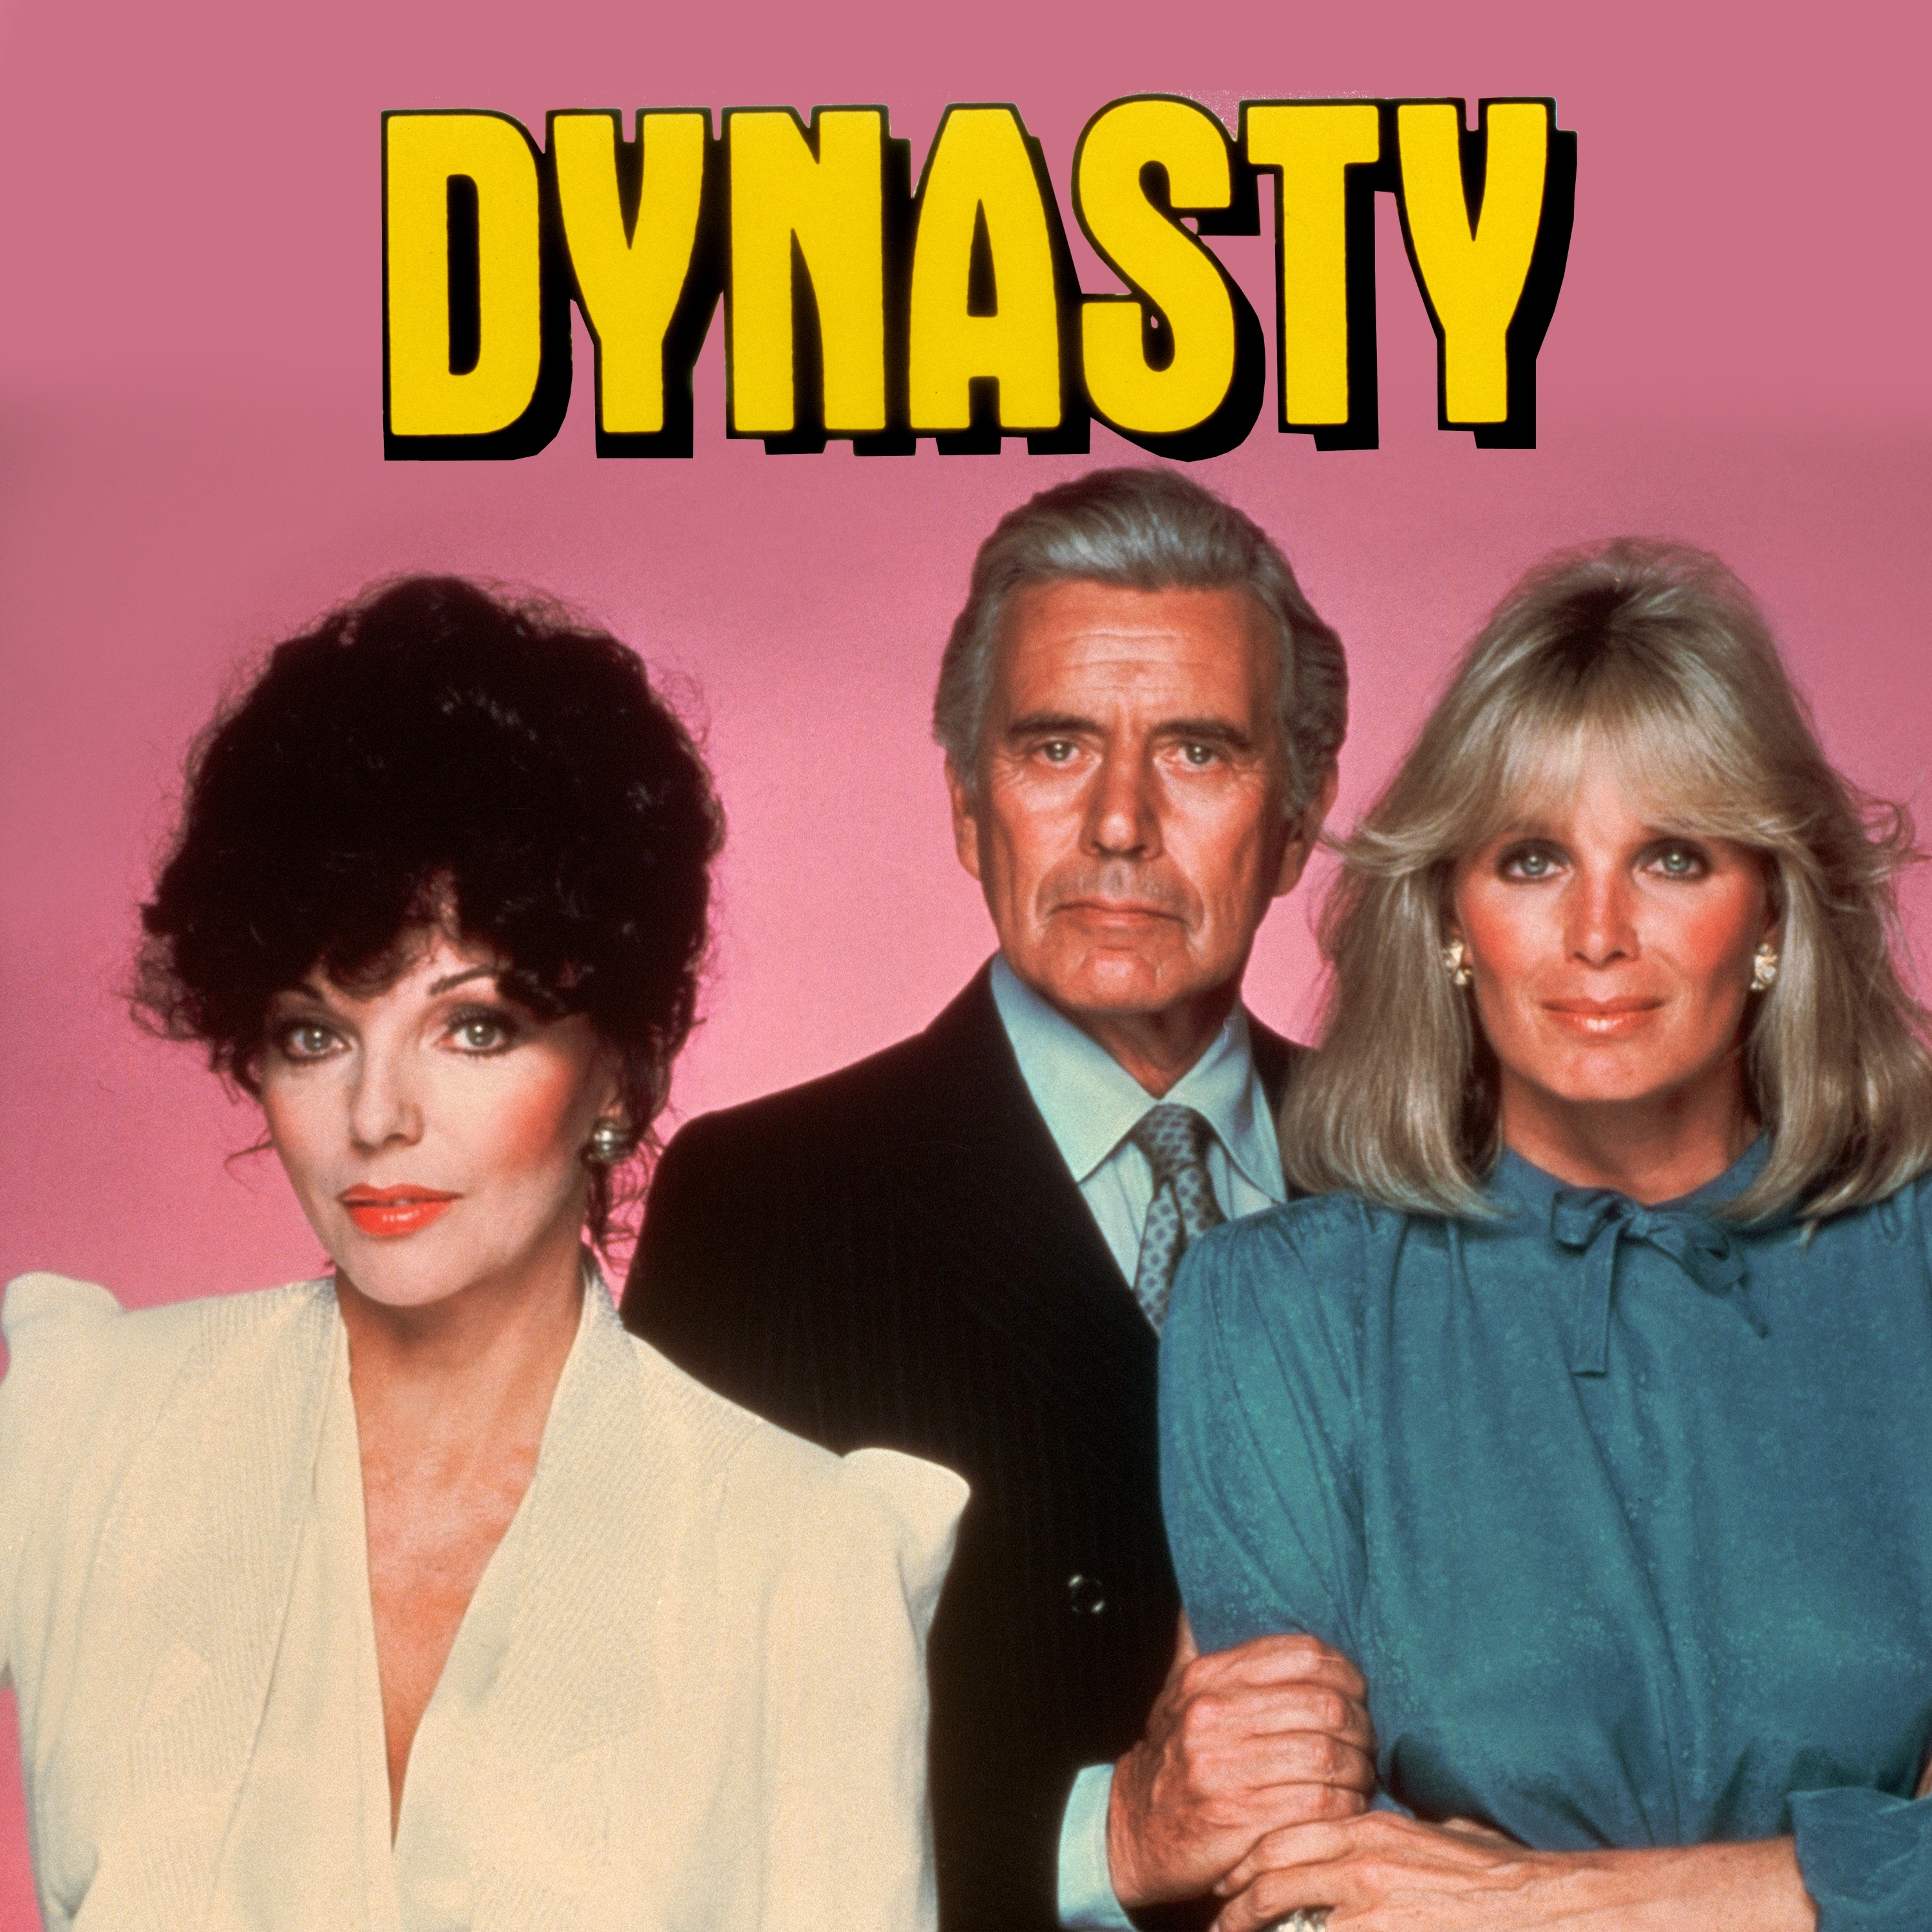 dynasty season 3 - photo #4